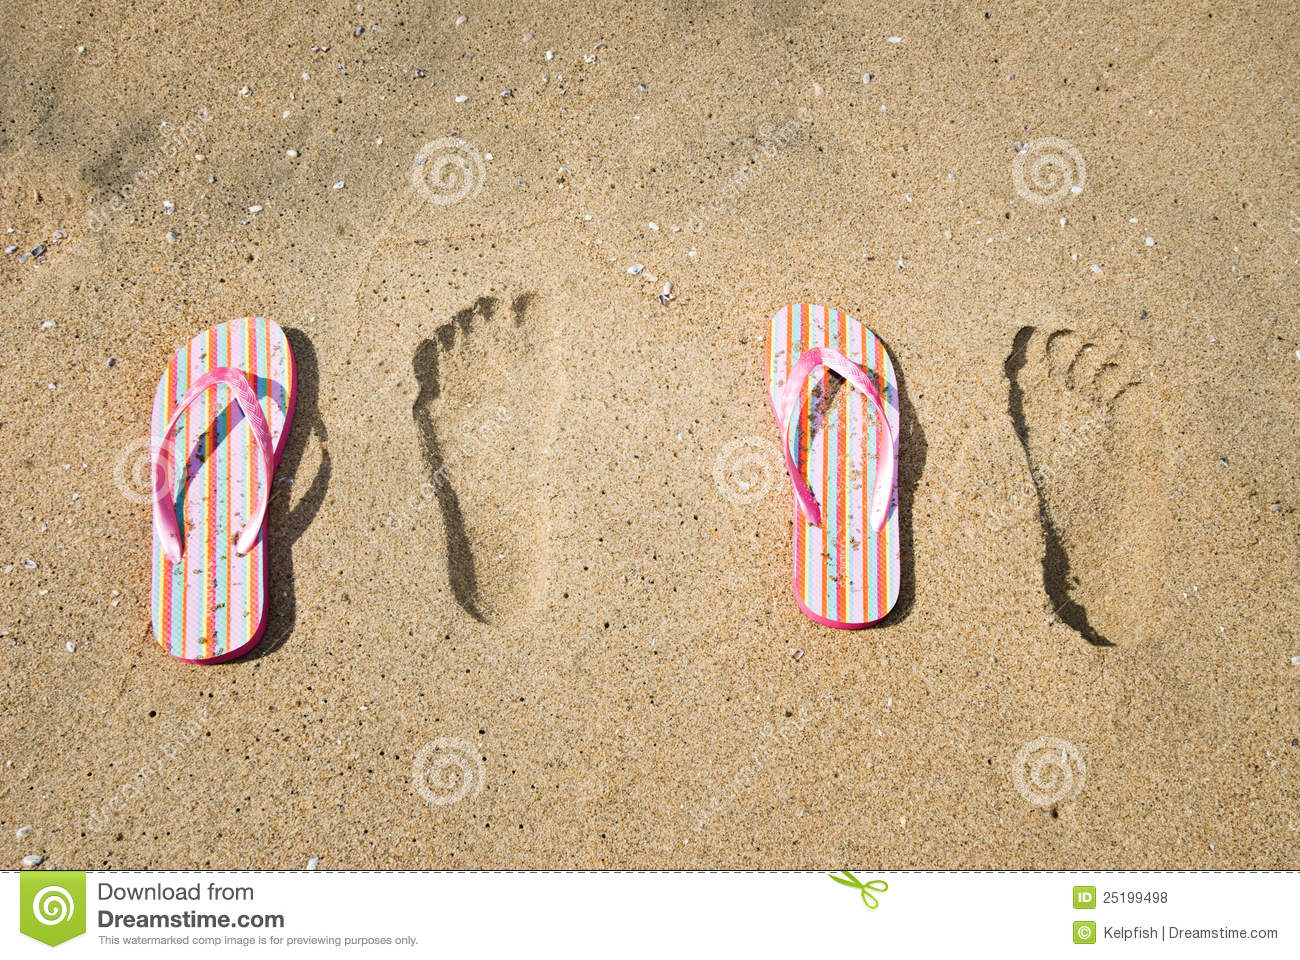 73bbc85bae88c Sandals And Footprints In The Sand Stock Photo - Image of protection ...